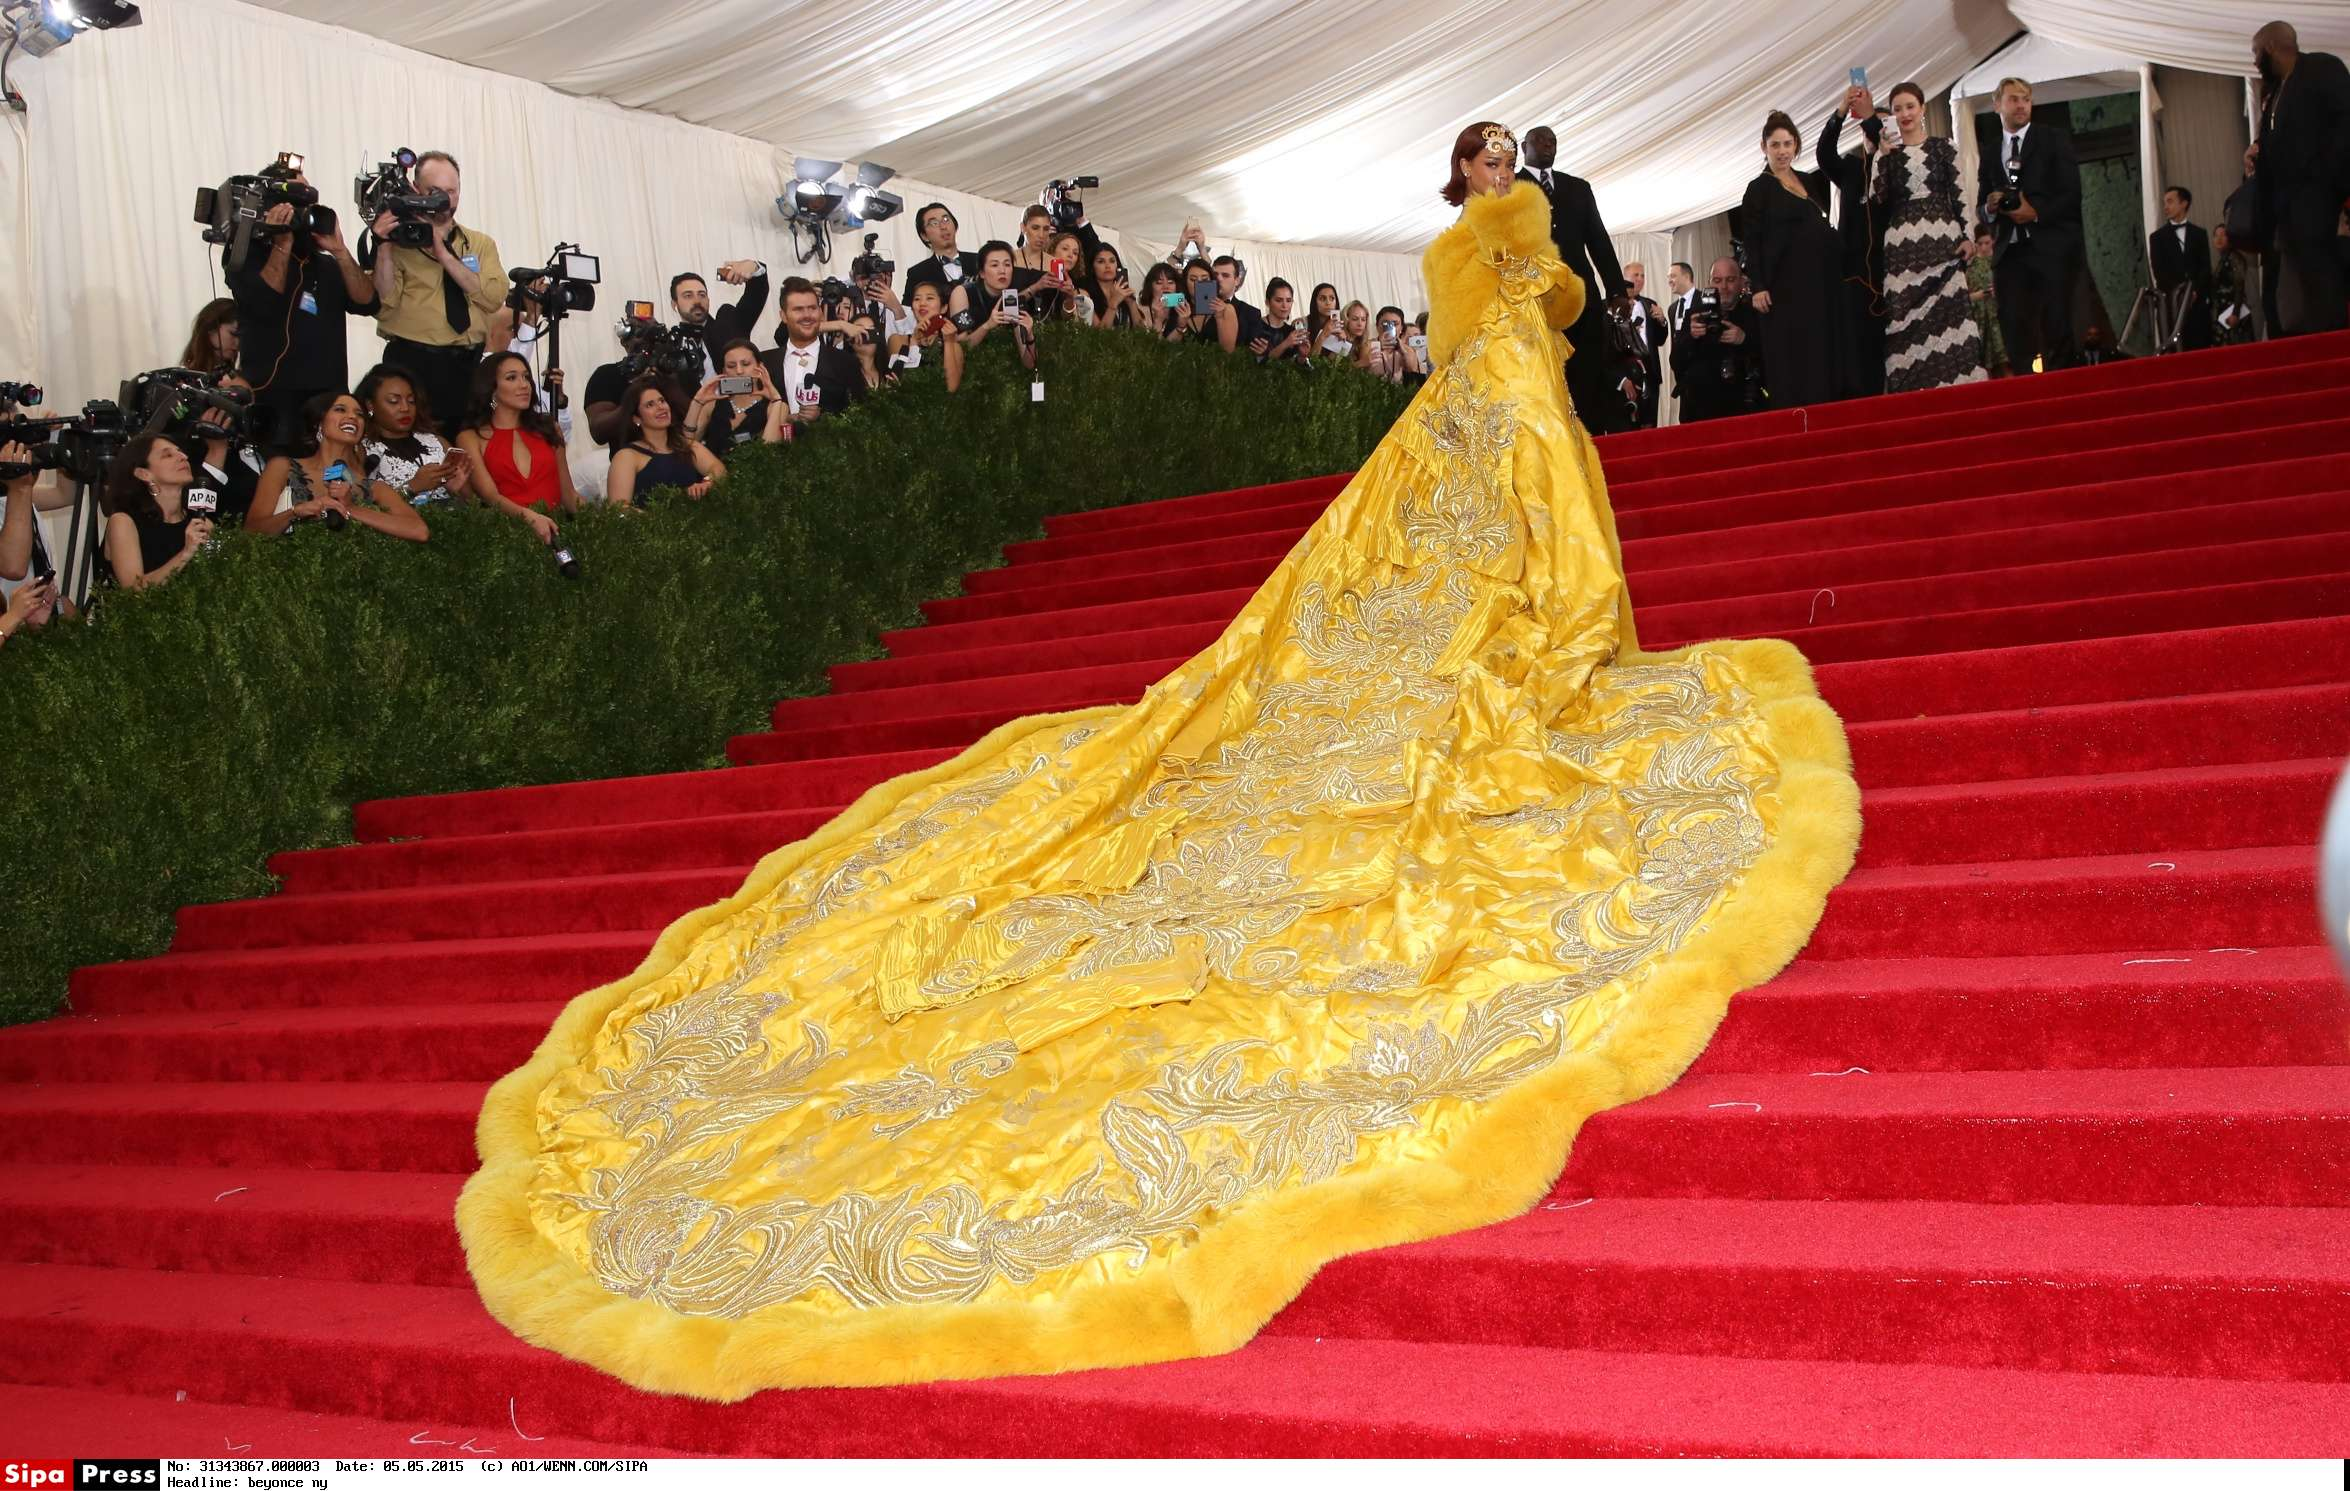 the 'China: Through The Looking Glass' Costume Institute Benefit Gala at the Metropolitan Museum of Art on May 4, 2015 in New York City. Featuring: rihanna Where: New York, New York, United States When: 05 May 2015 Credit: Andres Otero/WENN.com/met_gala_ny_2015_set_5_050515_01.wenn22450143/1505051406